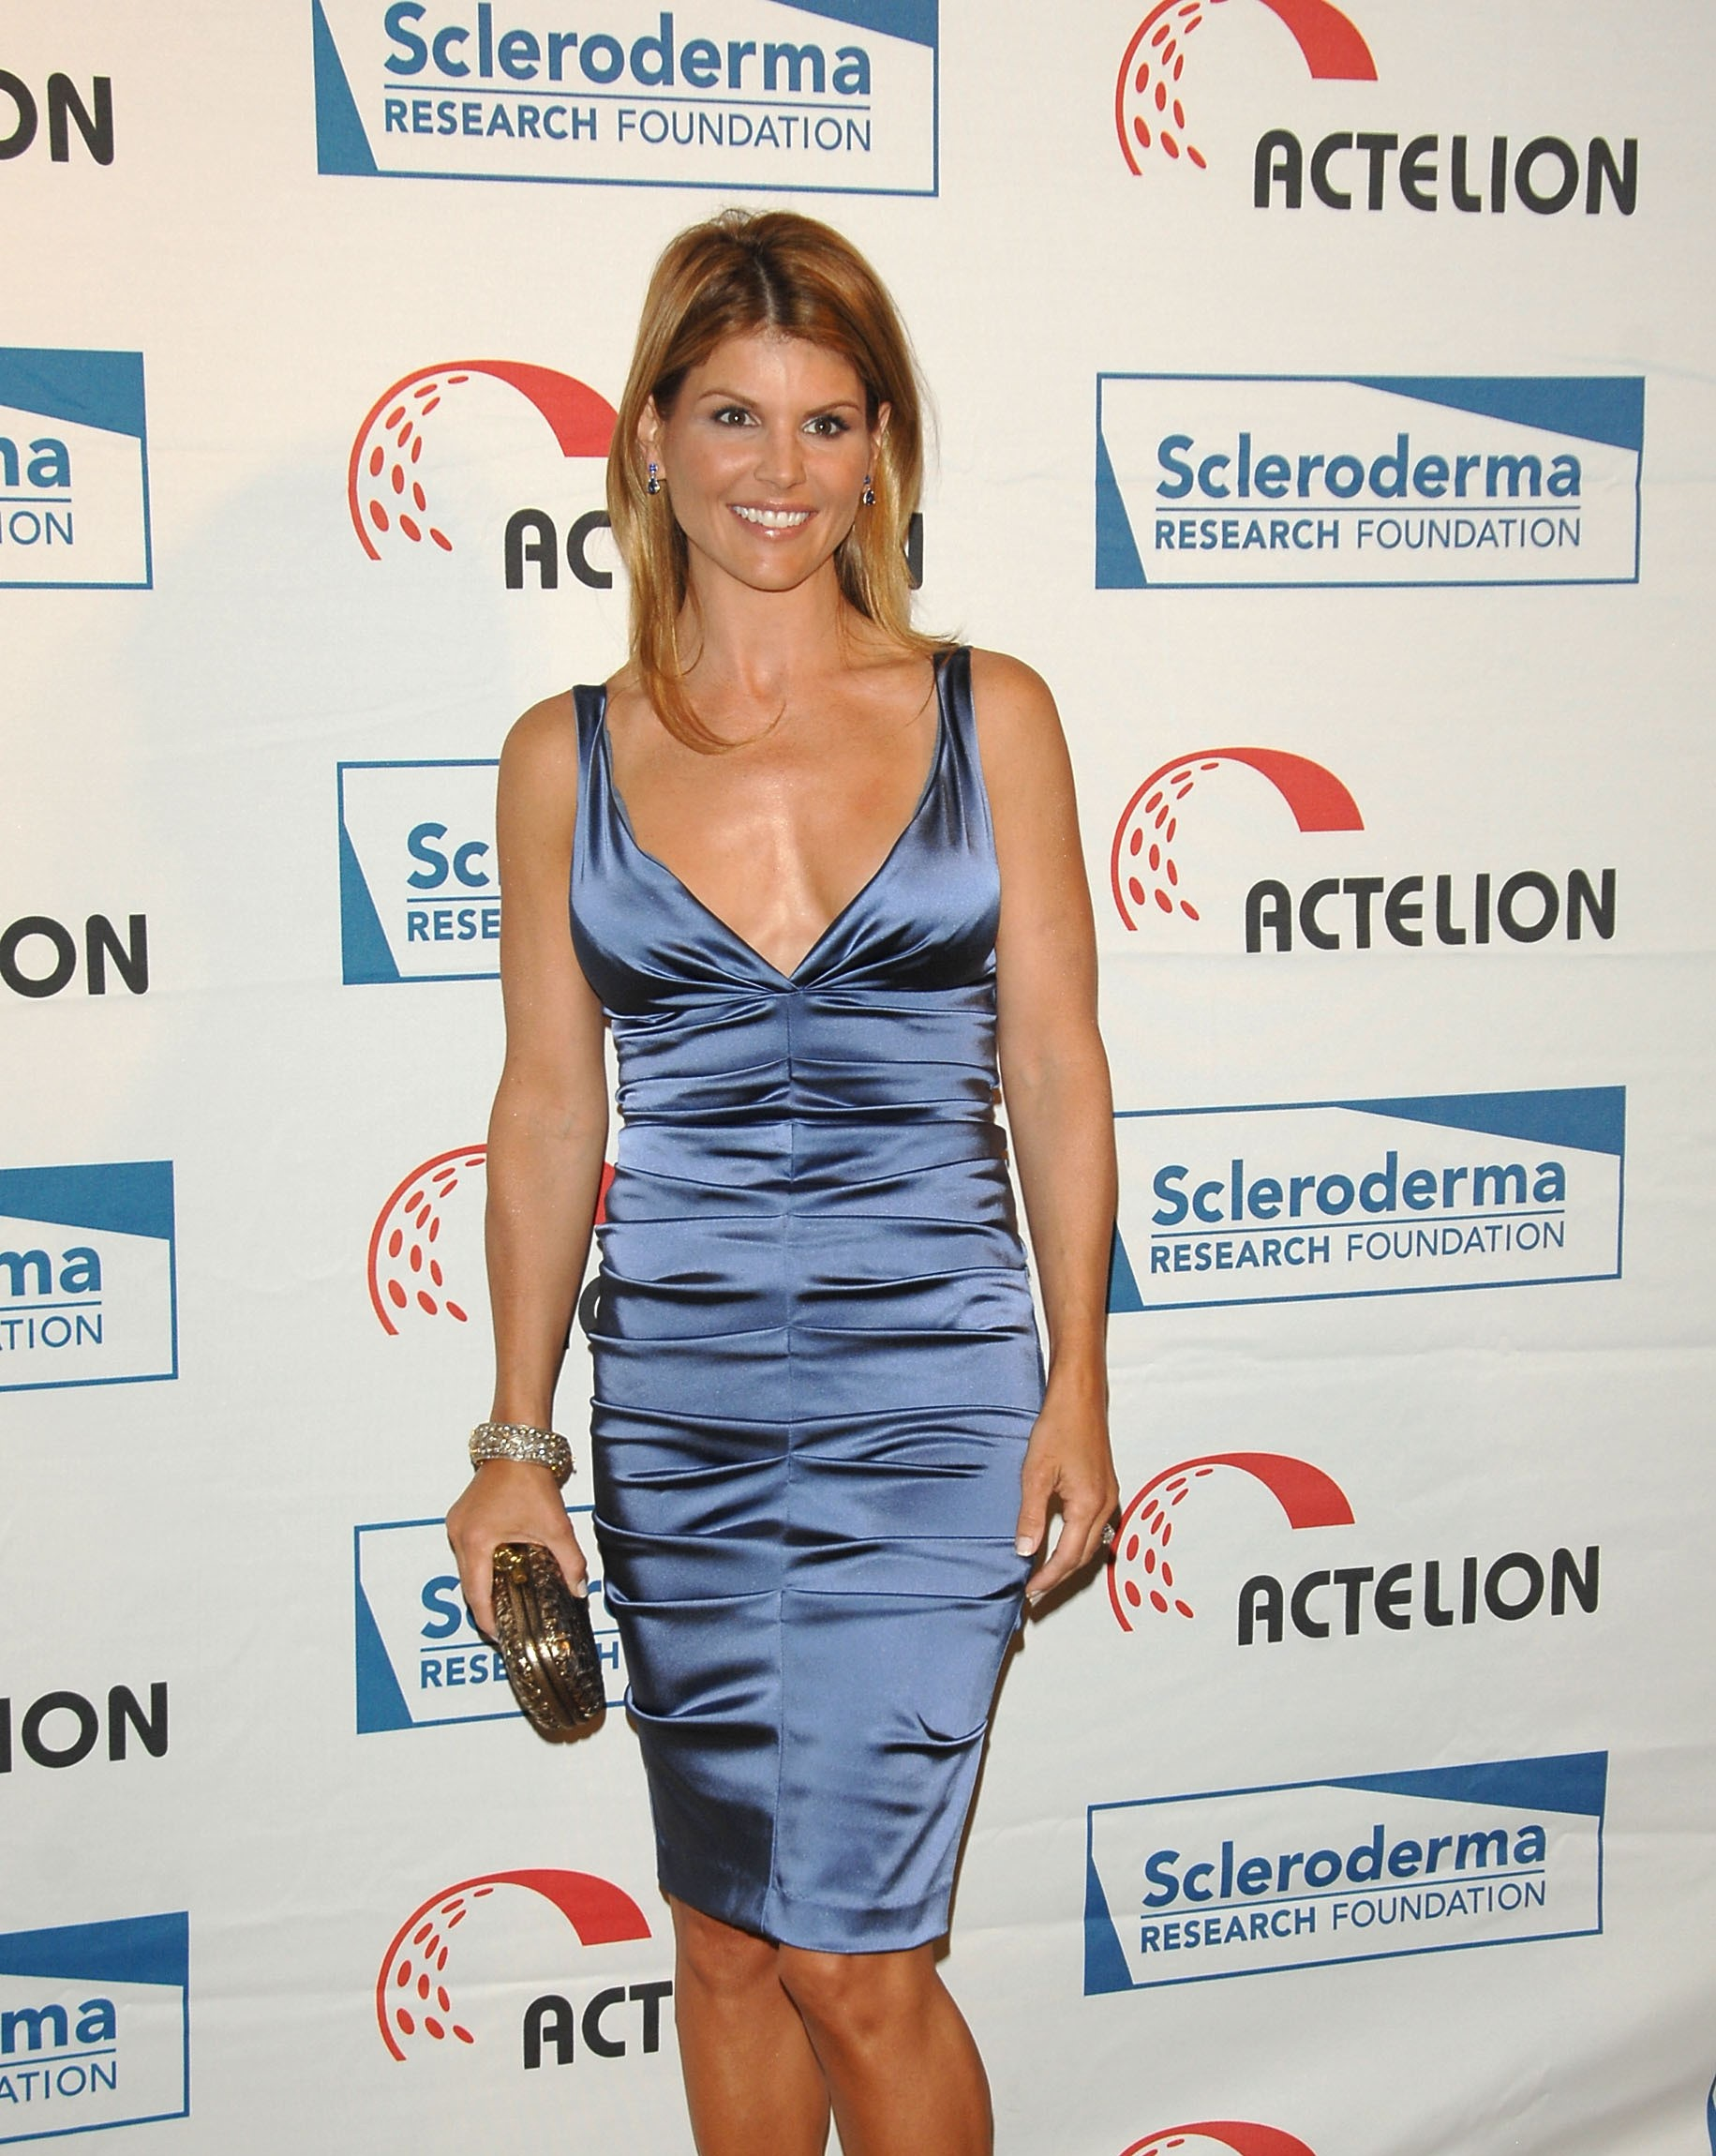 Lori Loughlin sexy and hot pic